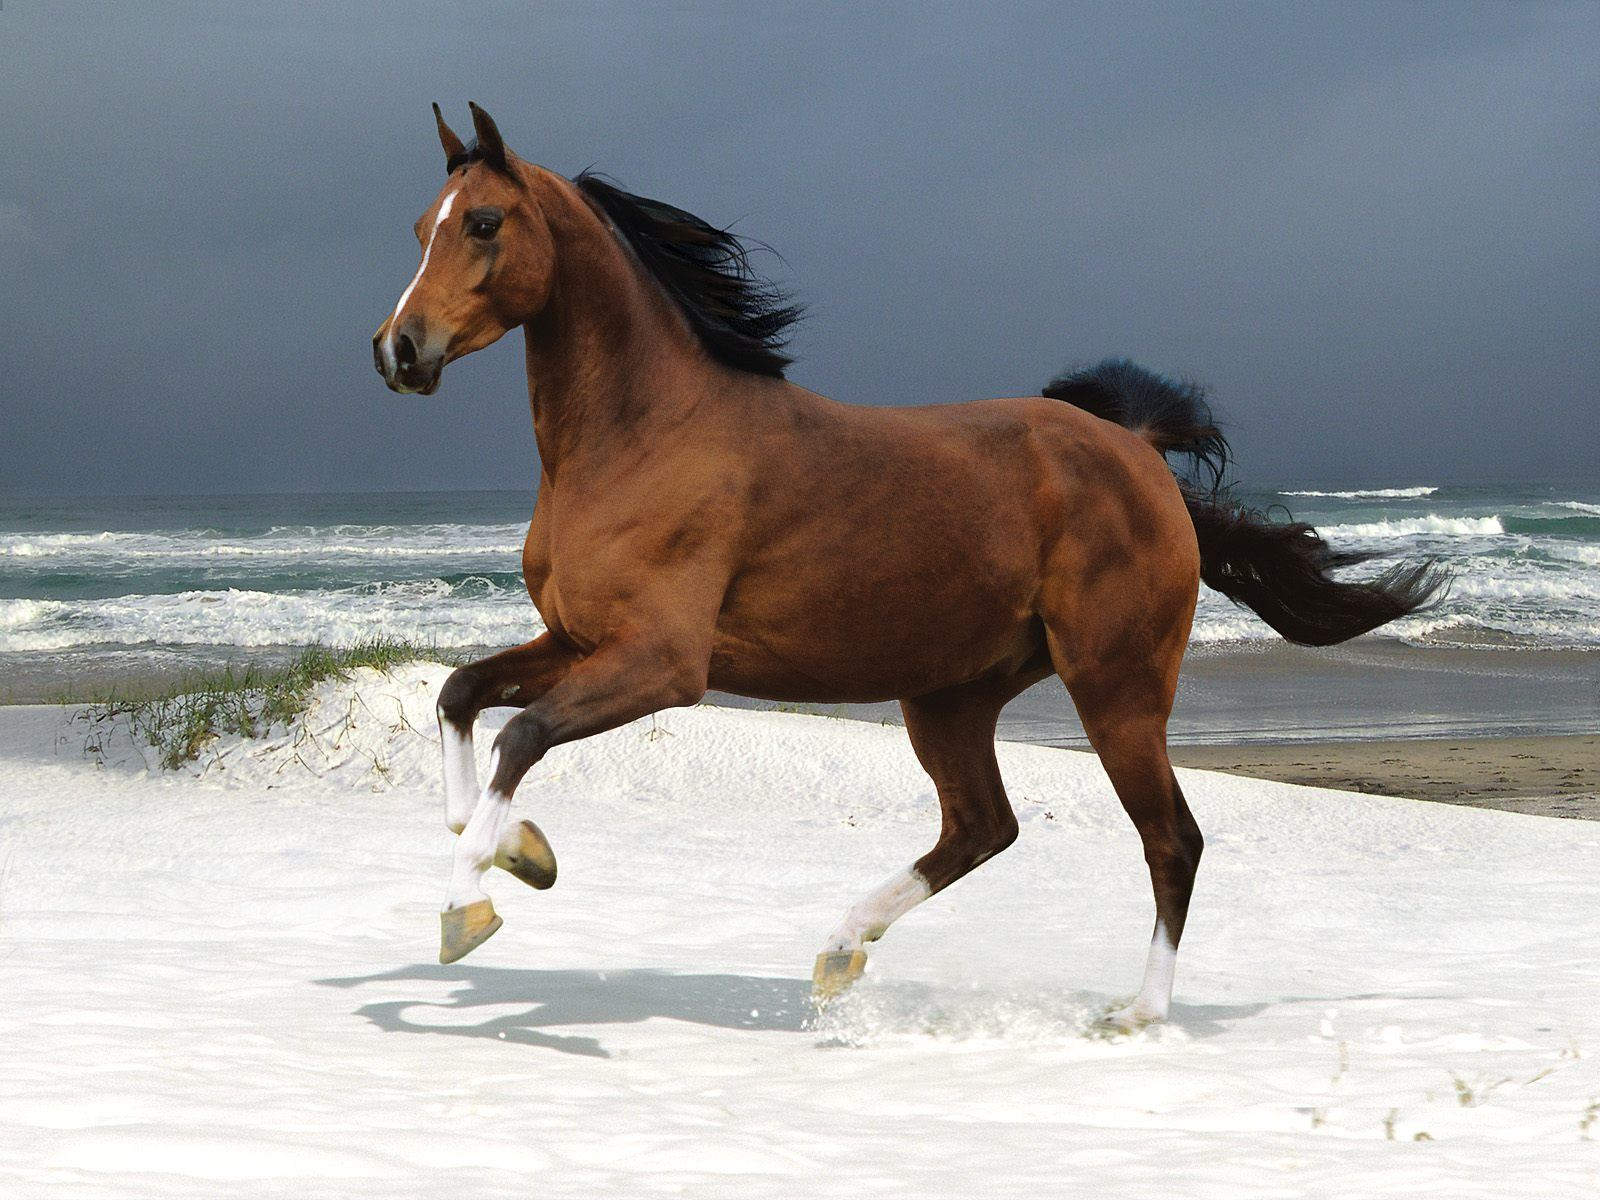 Beautiful Horse on a Beach 392.28 Kb